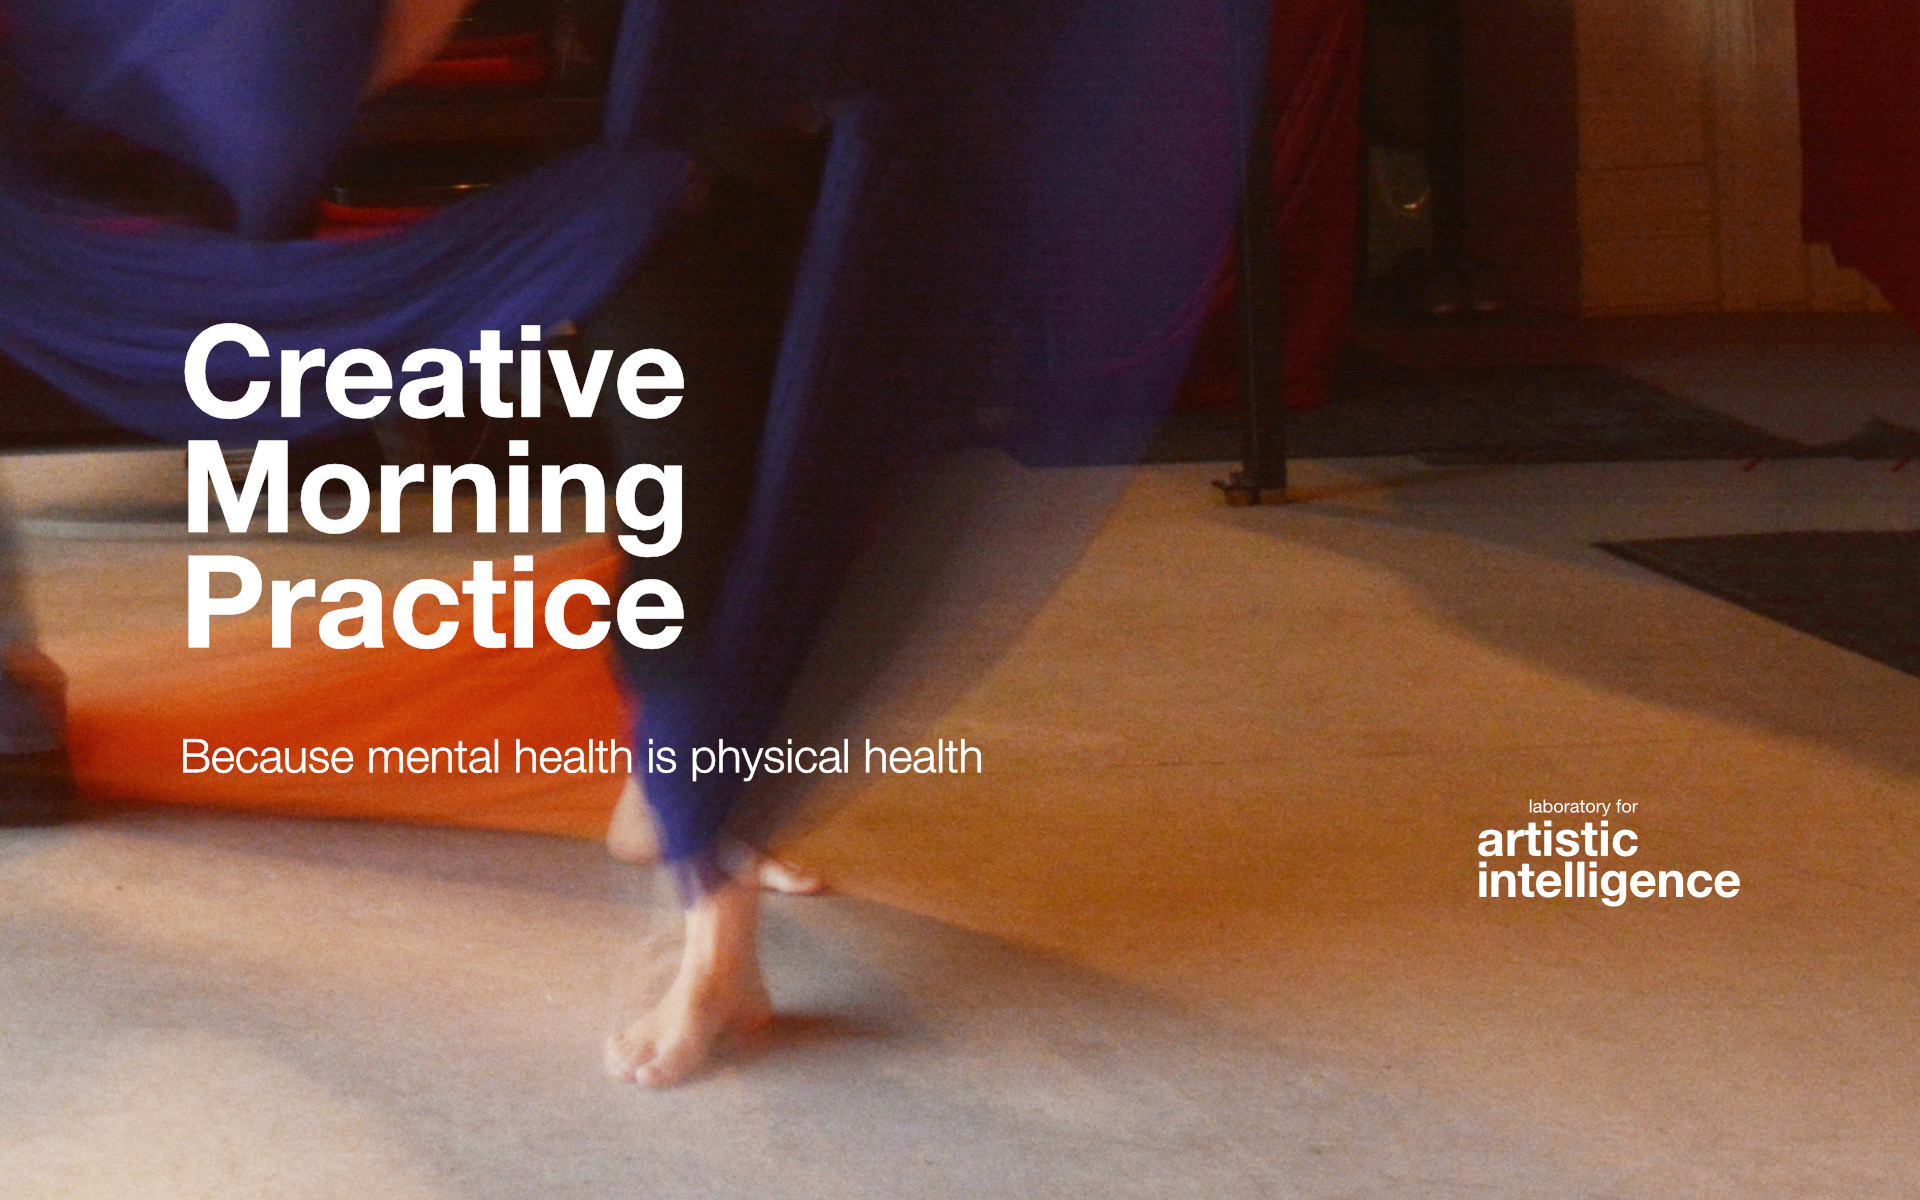 """Image of a flyer for Creative Morning Practice flyer. A person is moving in the image, possibly dancing. Below the title, the subheading reads """"Because mental health is physical health."""" To the right of the image is the logo for the Laboratory for Artistic Intelligence."""